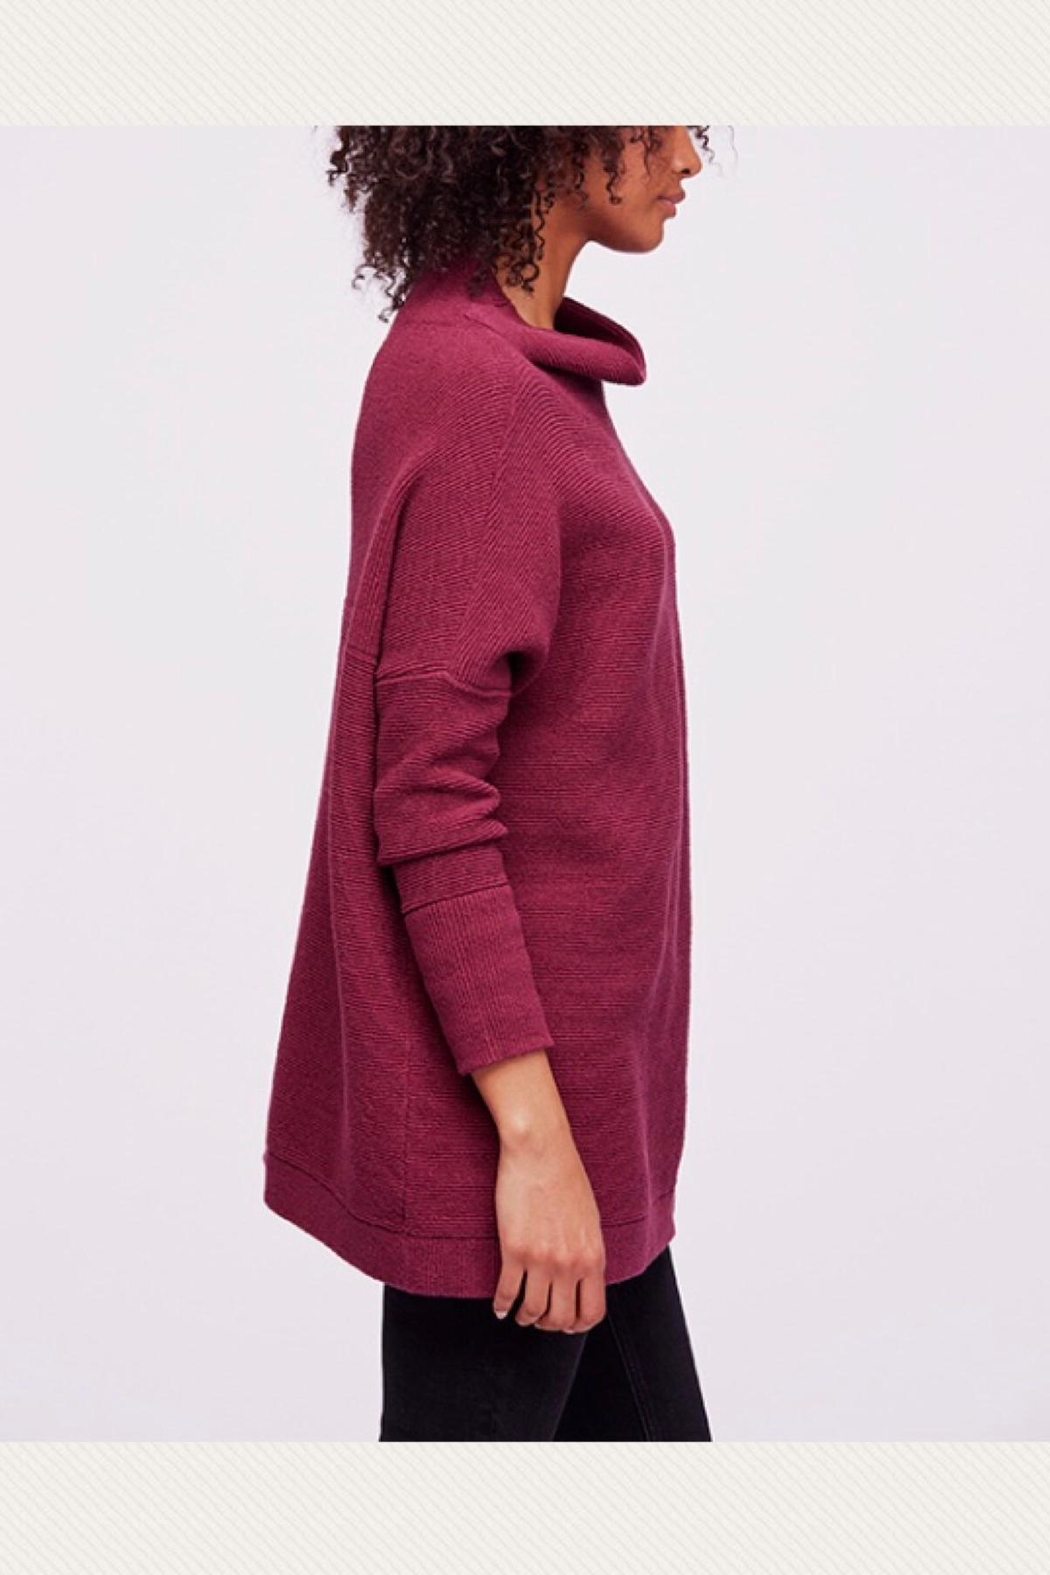 Free People Ottoman Slouchy Tunic From Georgia By All Together